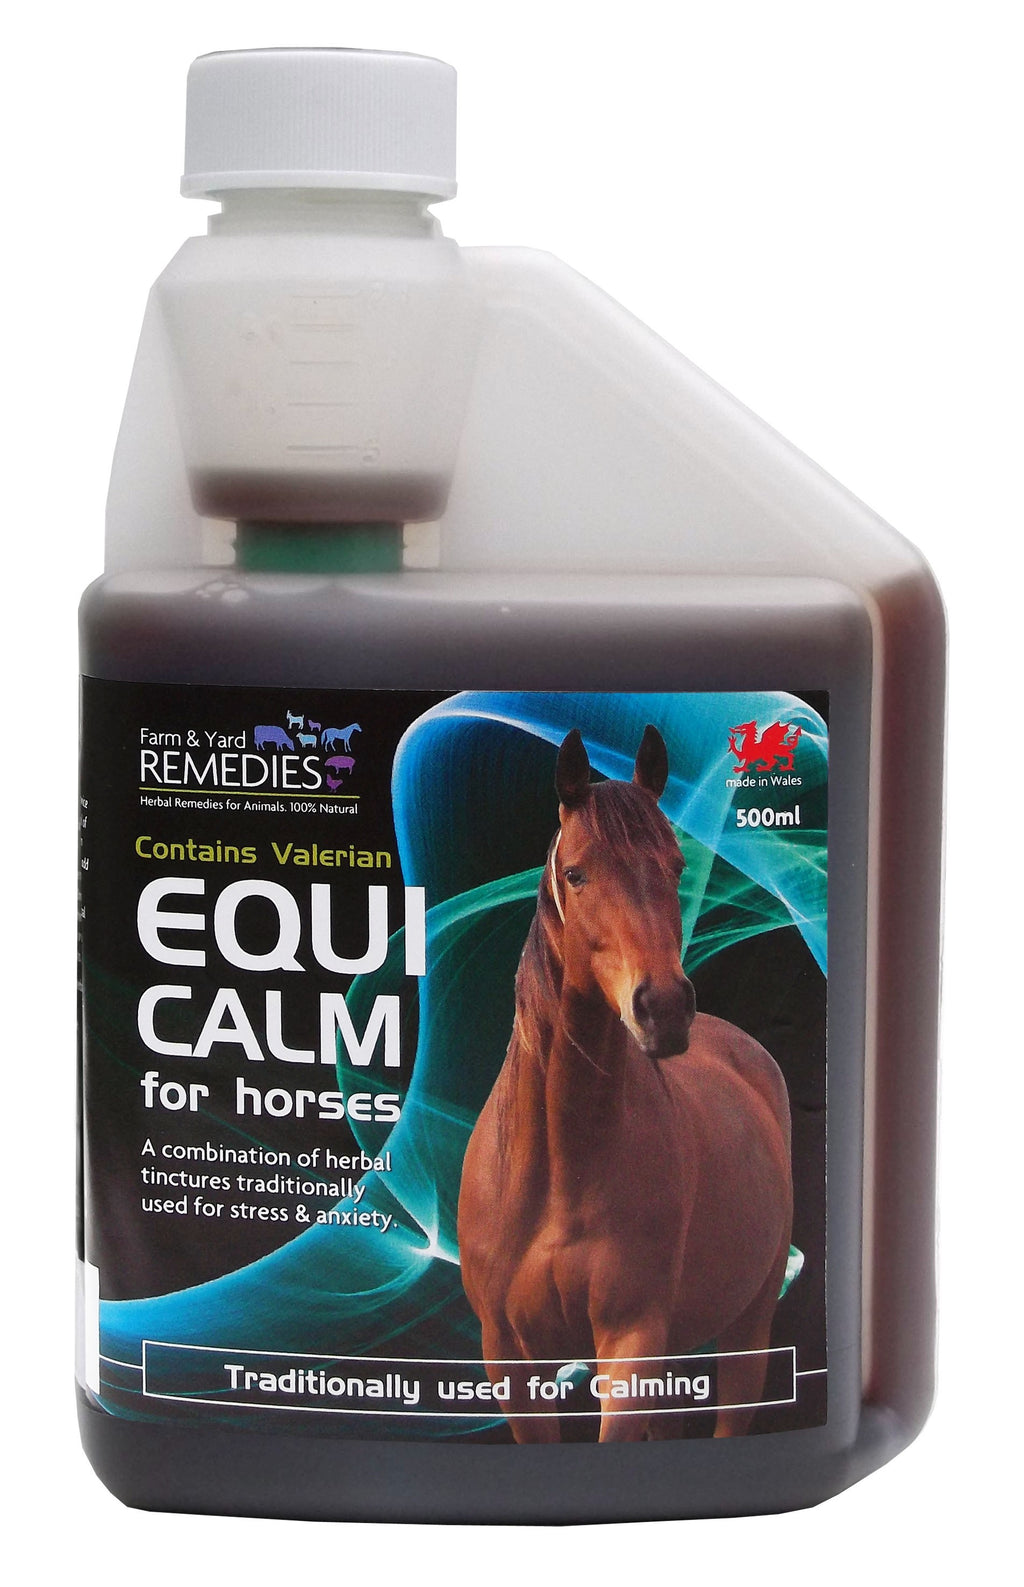 Farm and Yard Remedies Equi Calm Calming Stress Reducing Herbal Supplement for Horses All Natural